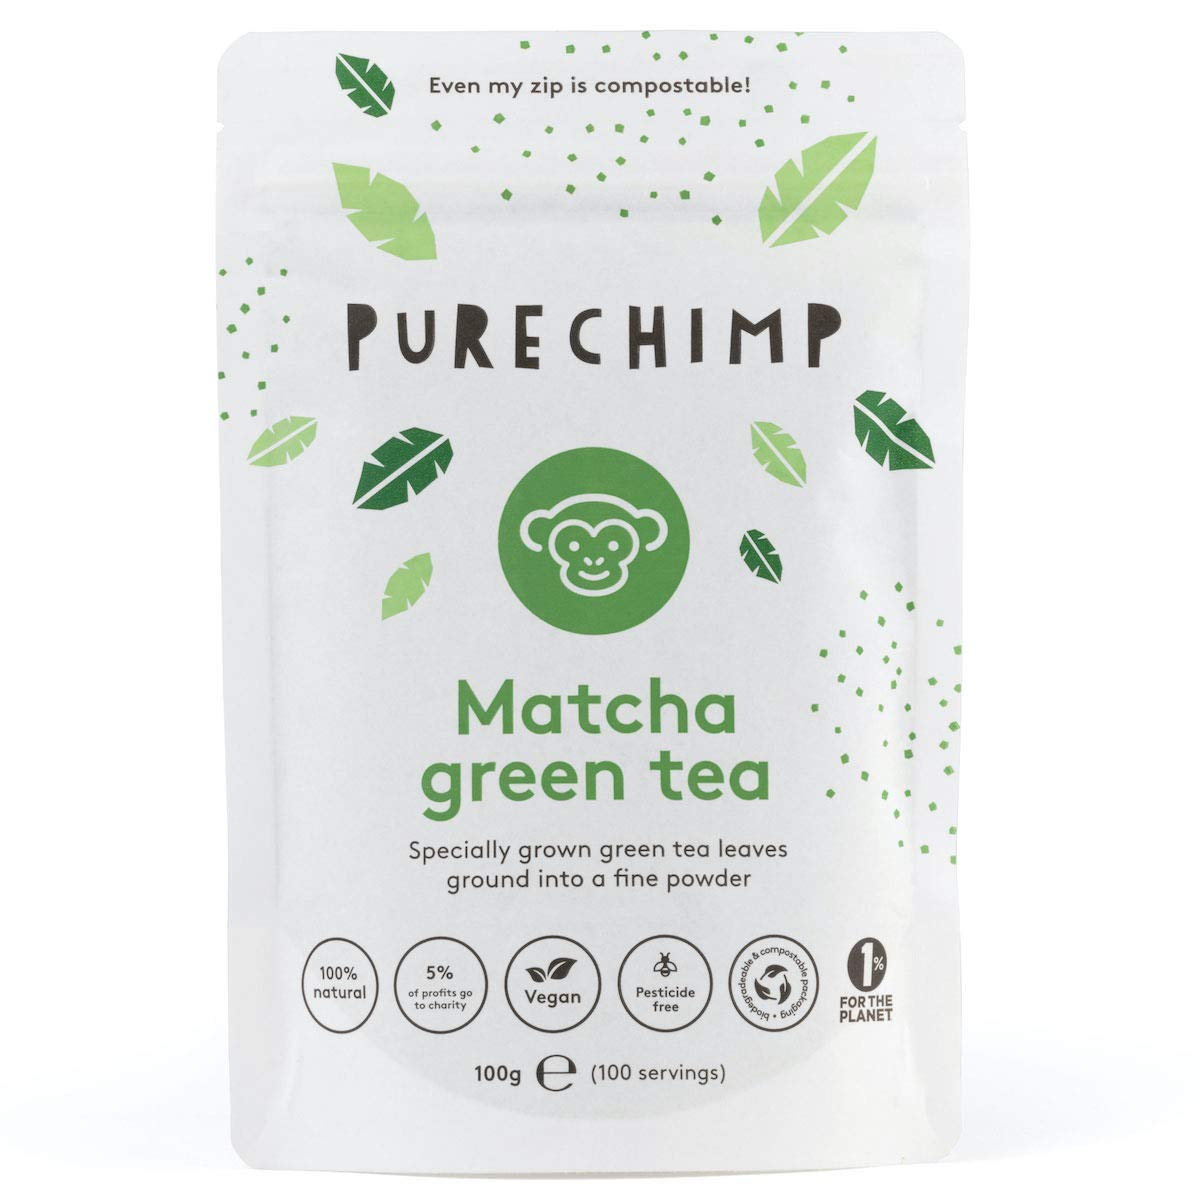 Matcha Tea Powder 100g by PureChimp - Ceremonial Grade from Japan - Pesticide-Free